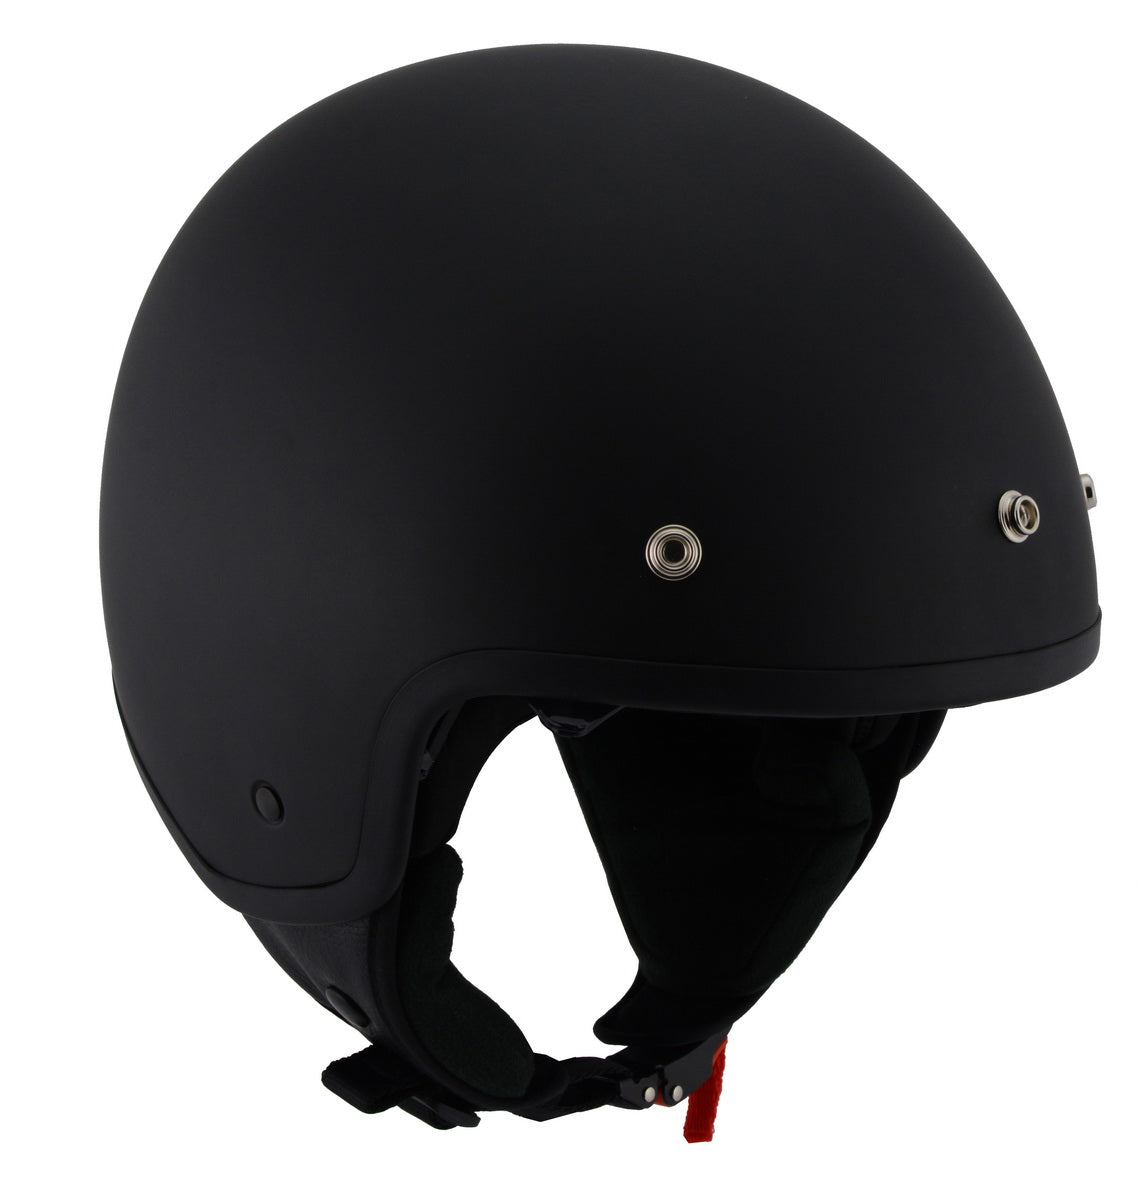 Milwaukee Performance Helmet MPH9700DOT 'Accelerator' Open Face Matte